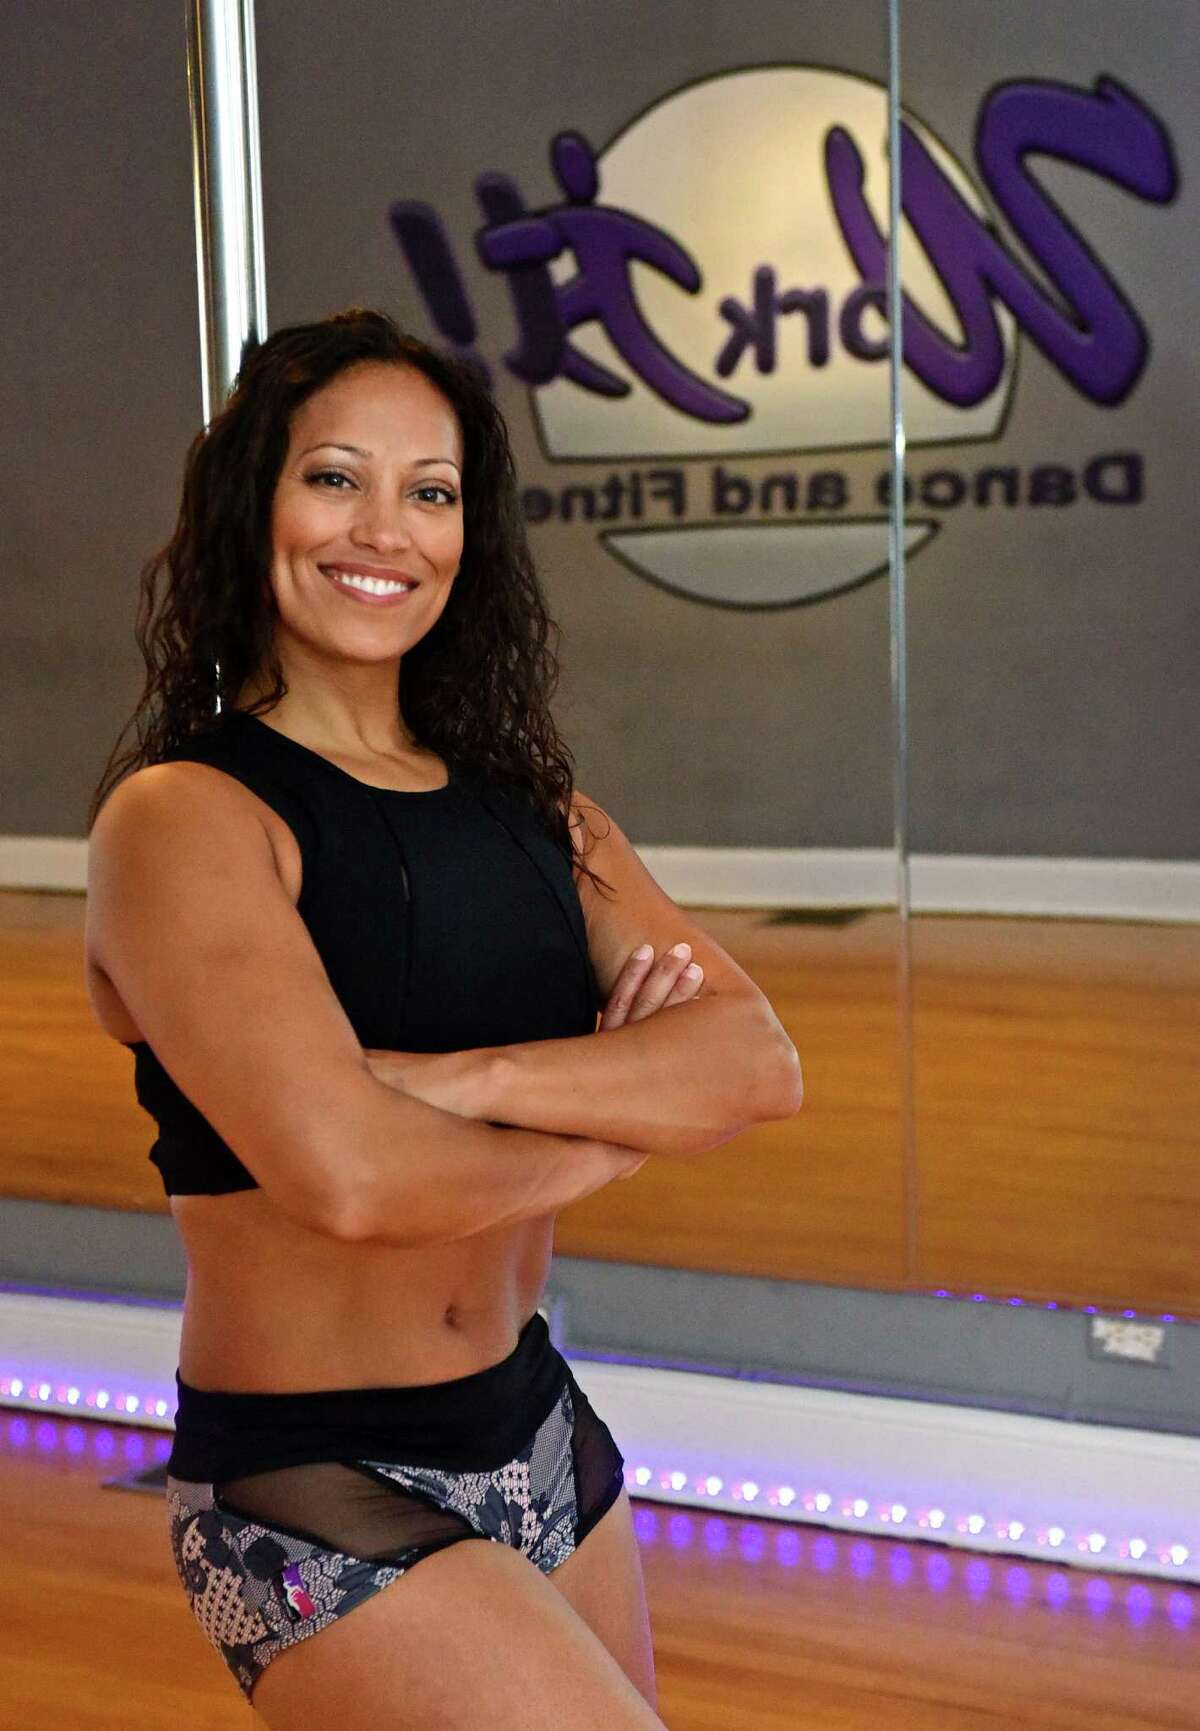 Norwalk resident and cancer survivor Michelle Abbruzzese, age 45, at her dance studio, Work It!, on North Main Street in Norwalk, Conn. Friday, October 7, 2016. Abbruzzese will be competing in the Northeast Pole Dancing Championships taking place in Stamford this weekend.